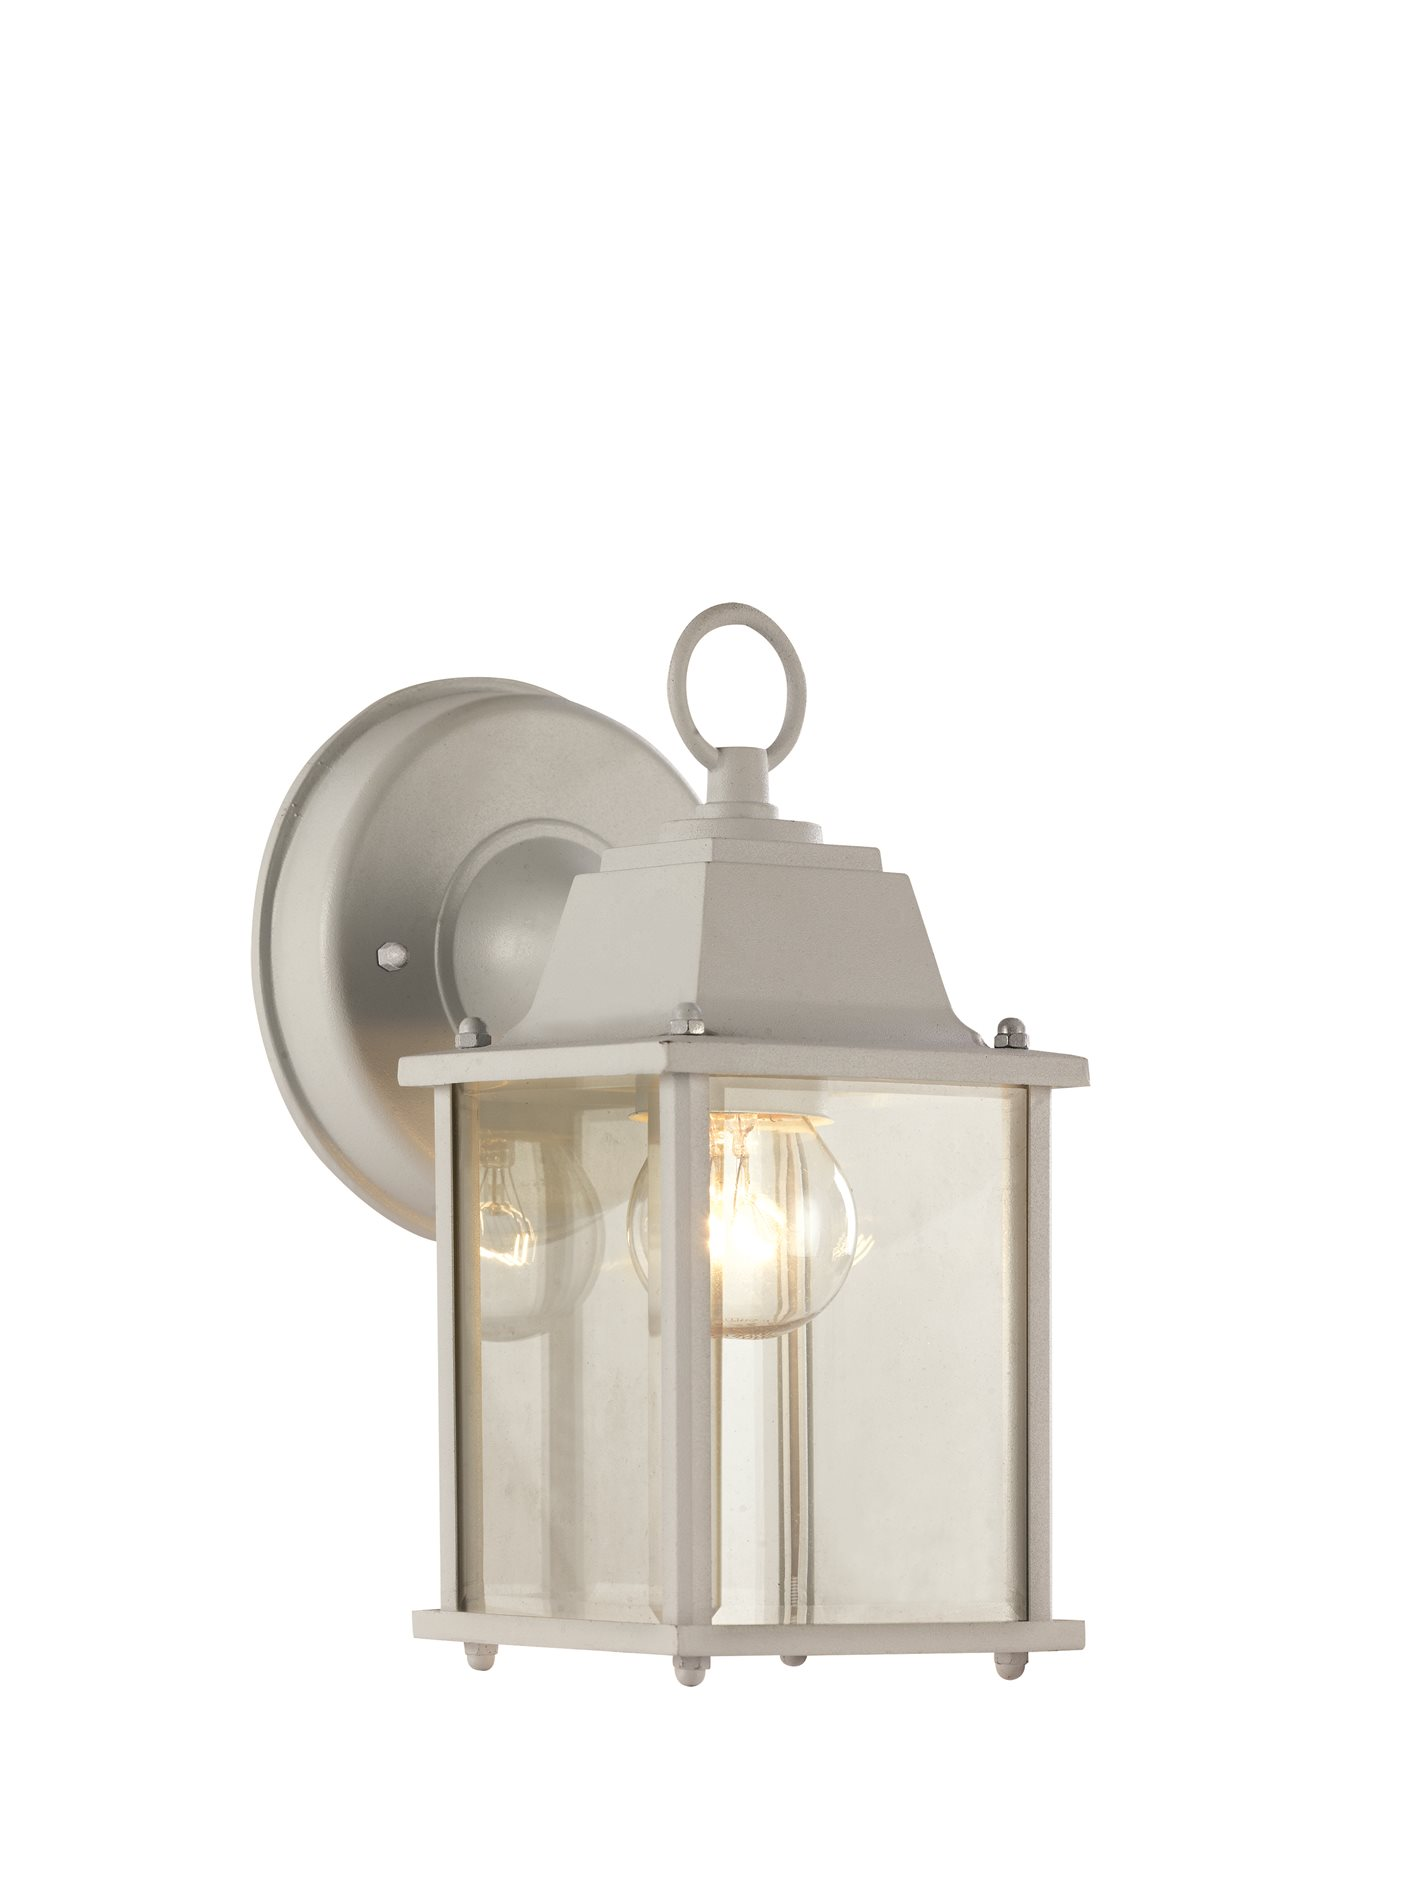 trans globe lighting 40455 traditional outdoor wall sconce. Black Bedroom Furniture Sets. Home Design Ideas